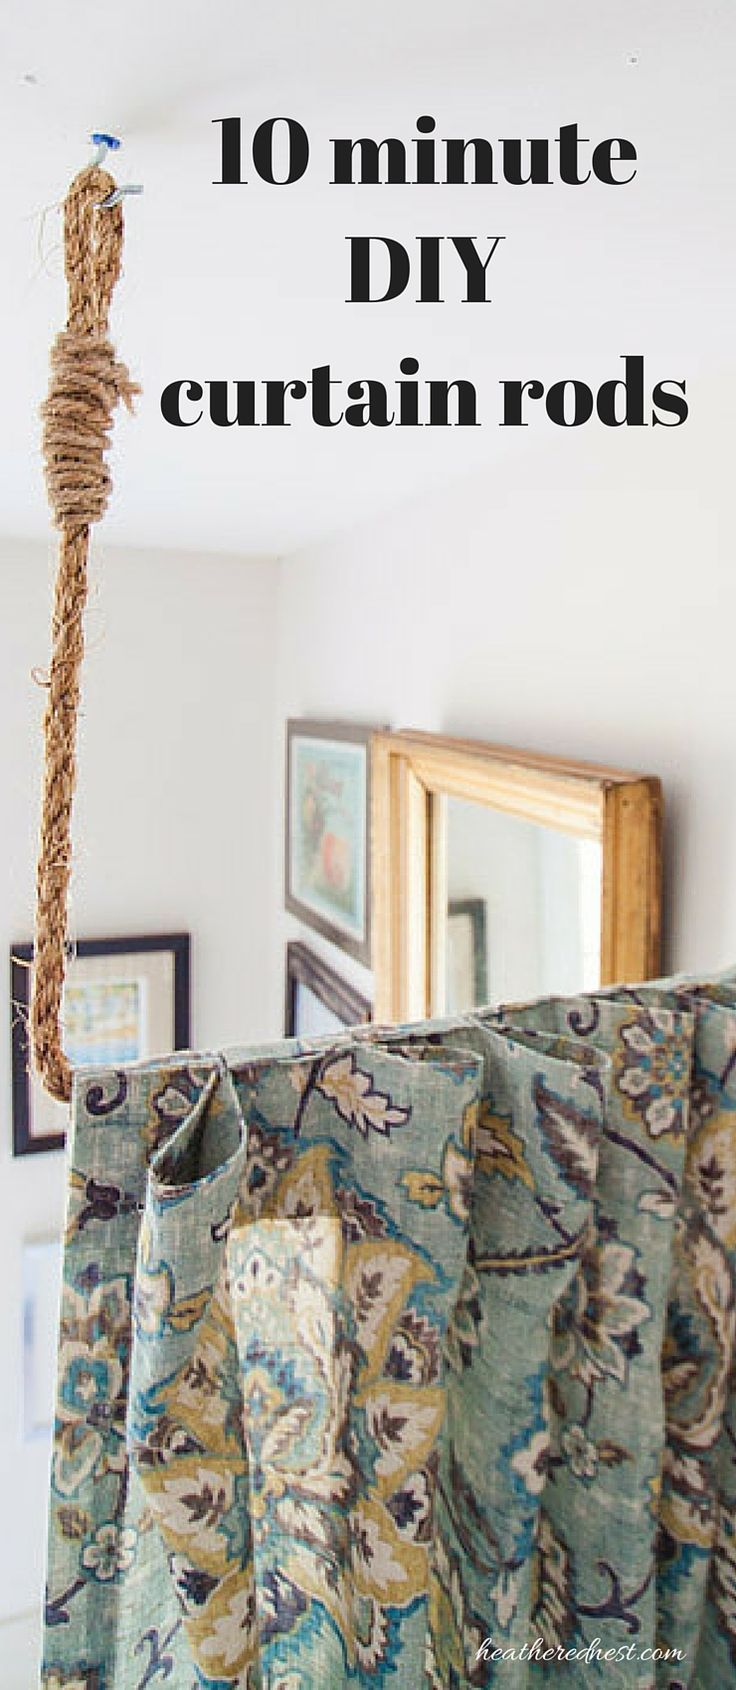 Aka Build A Diy Curtain Rod In 10 Minutes Ceiling Curtain Rodroom Divider